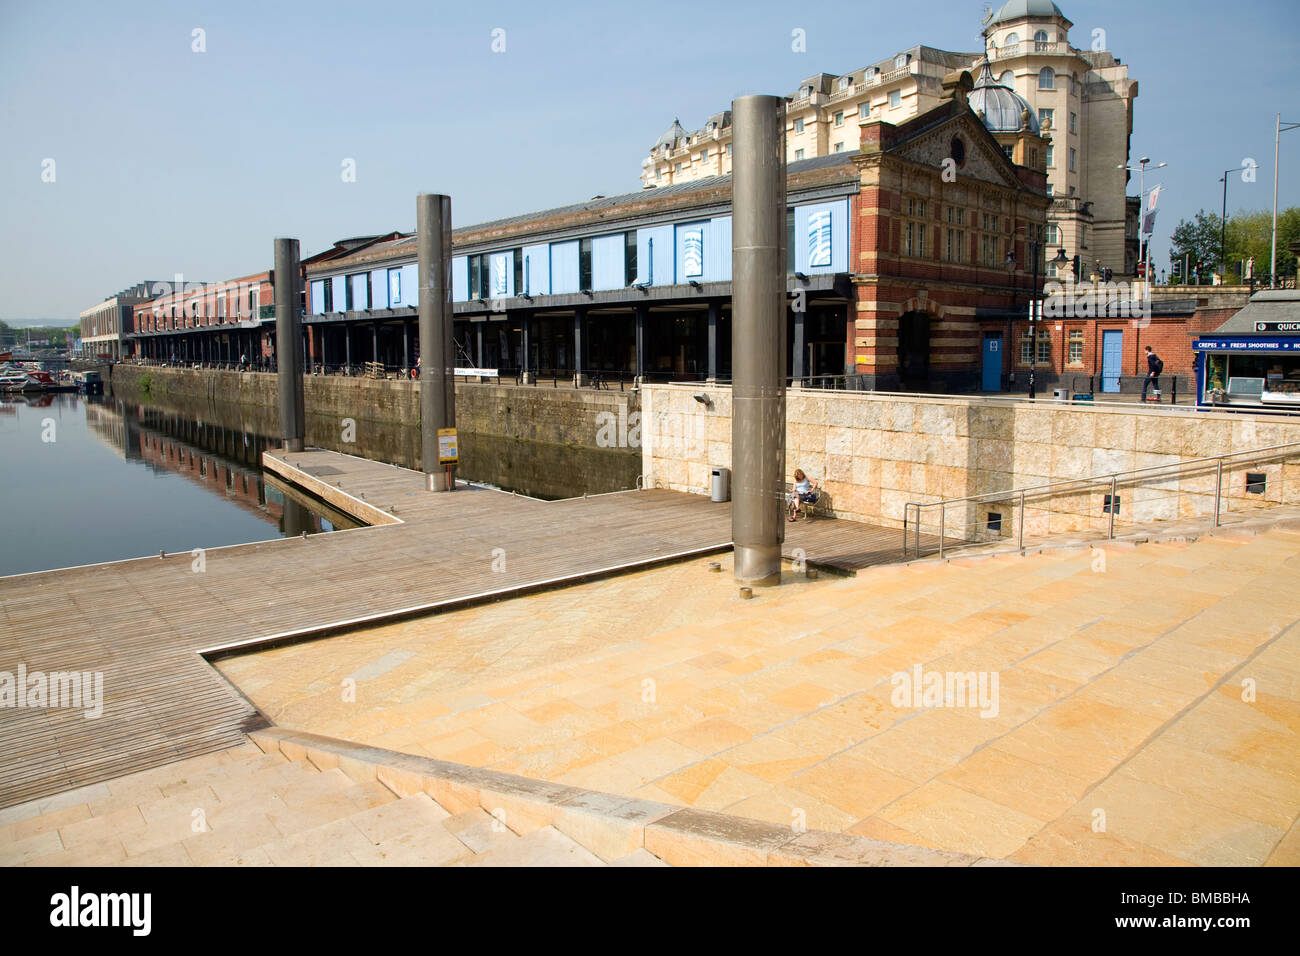 Watershed media centre, St Augustine's Reach, Bristol - Stock Image